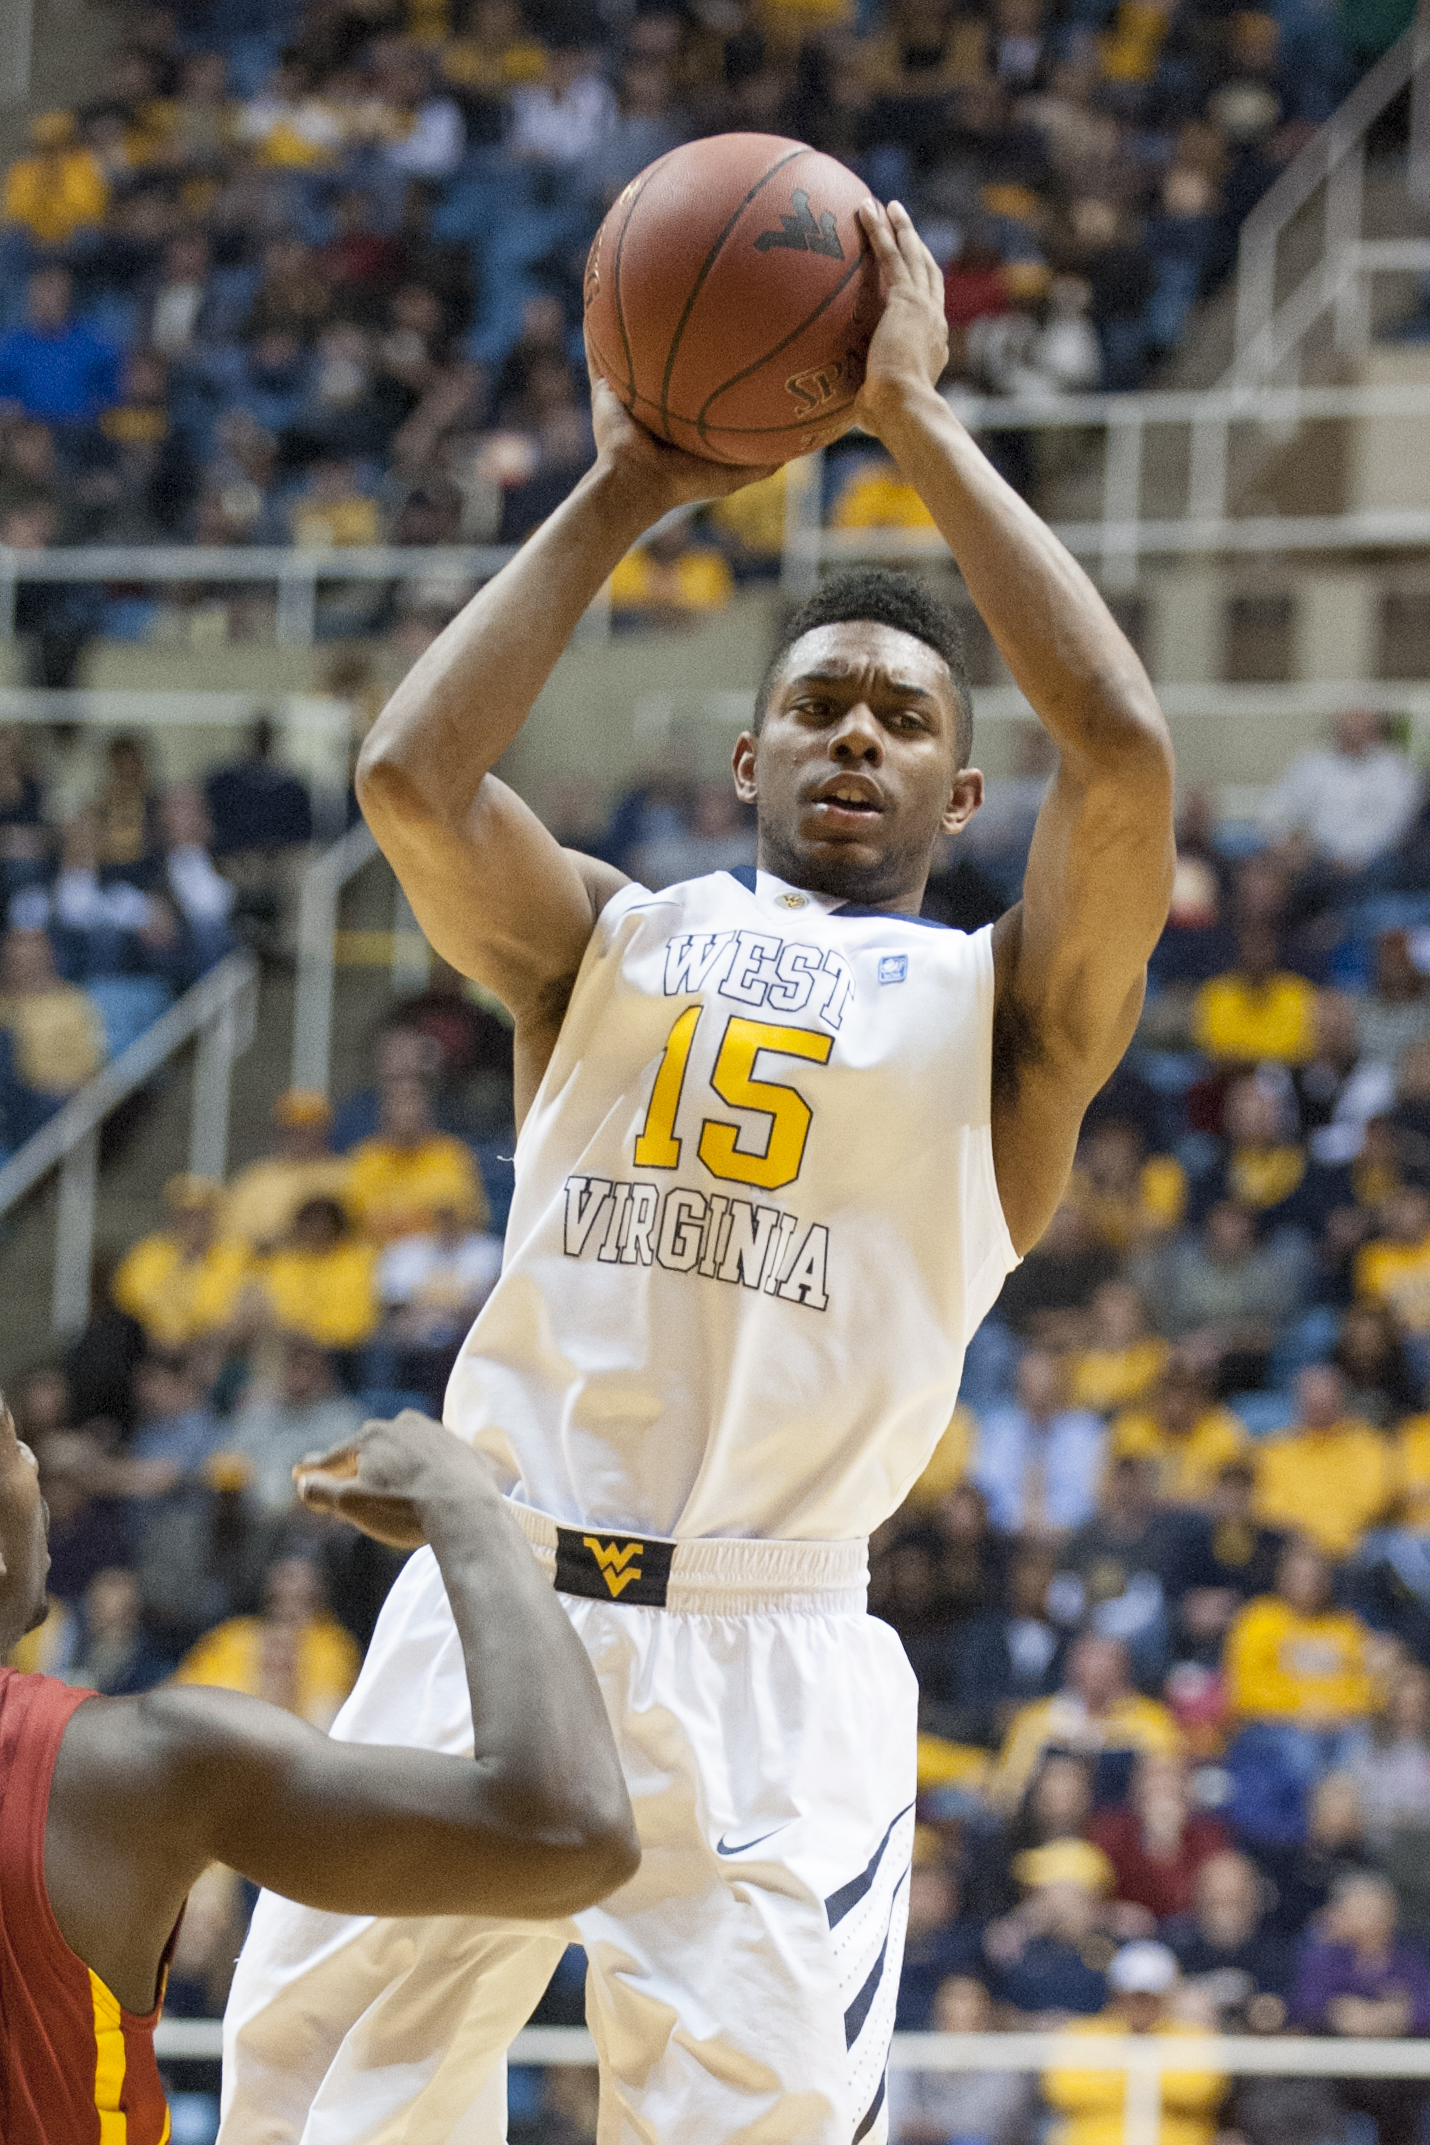 FILE - In this Monday, Feb. 10, 2014, file photo, West Virginia's Terry Henderson (15) looks to pass during an NCAA college basketball game against Iowa State, in Morgantown, W.Va. After two seasons at West Virginia the 6-foot-4 guard sat out last year as